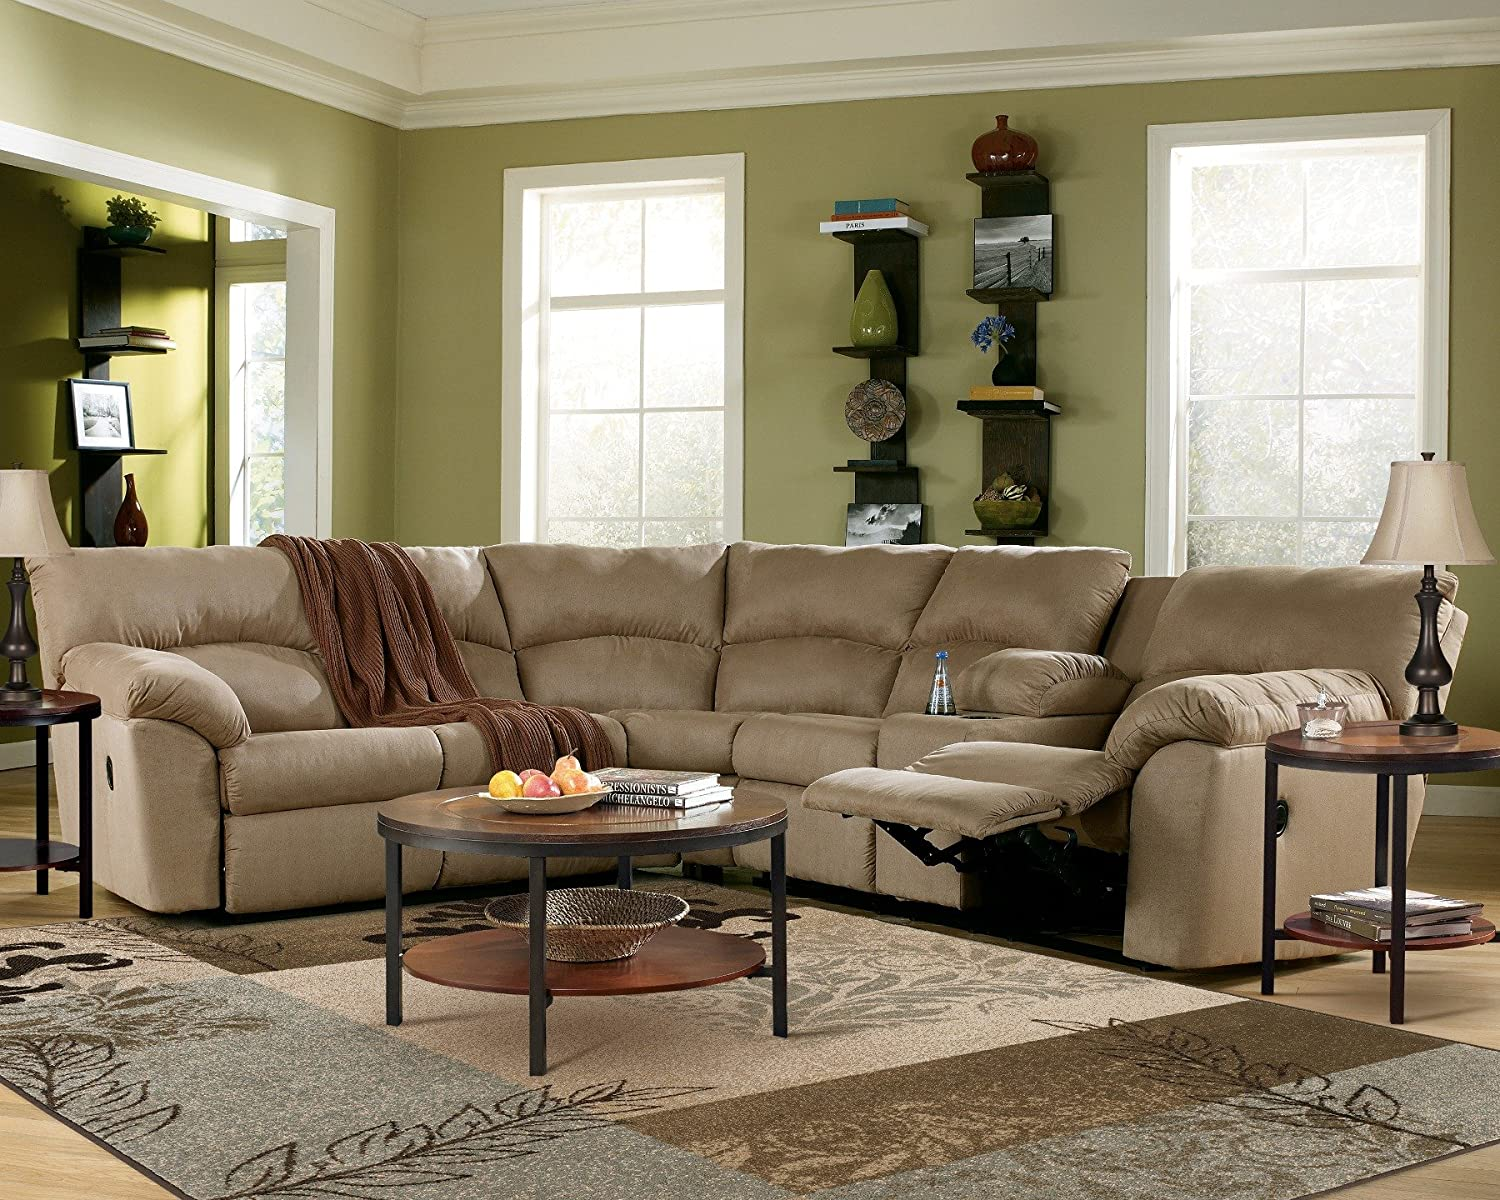 Amazoncom Ashley Amazon 617004849 Sectional Sofa with Left Arm